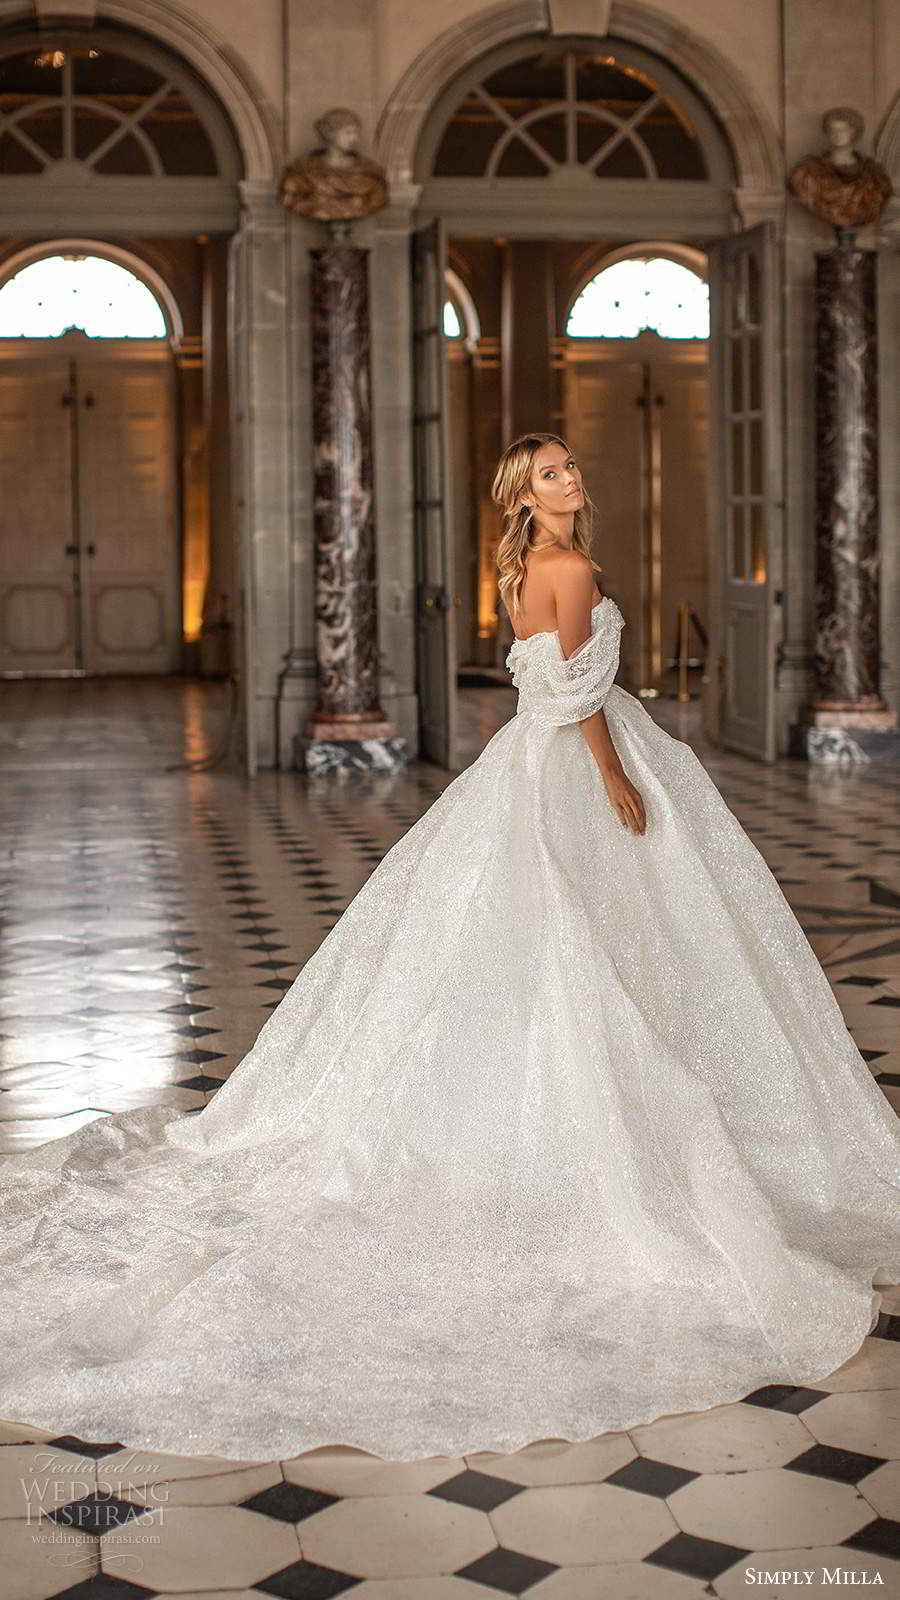 simply milla nova 2020 bridal off shoulder straps sweetheart neckline fully embellished a line ball gown glitzy wedding dress chapel train (10) bv